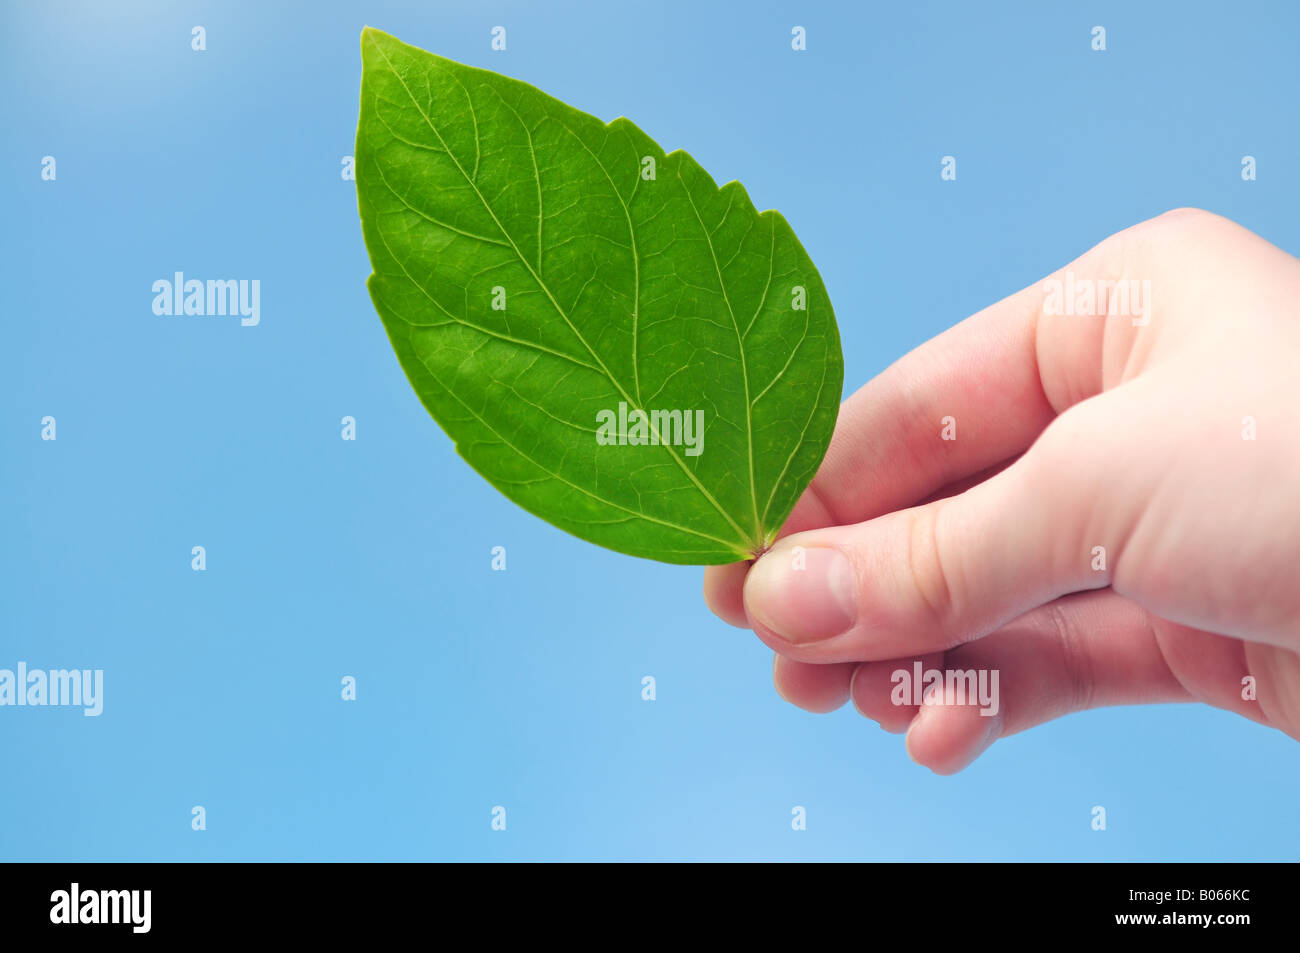 Hand holding fresh feuille verte sur fond bleu Photo Stock